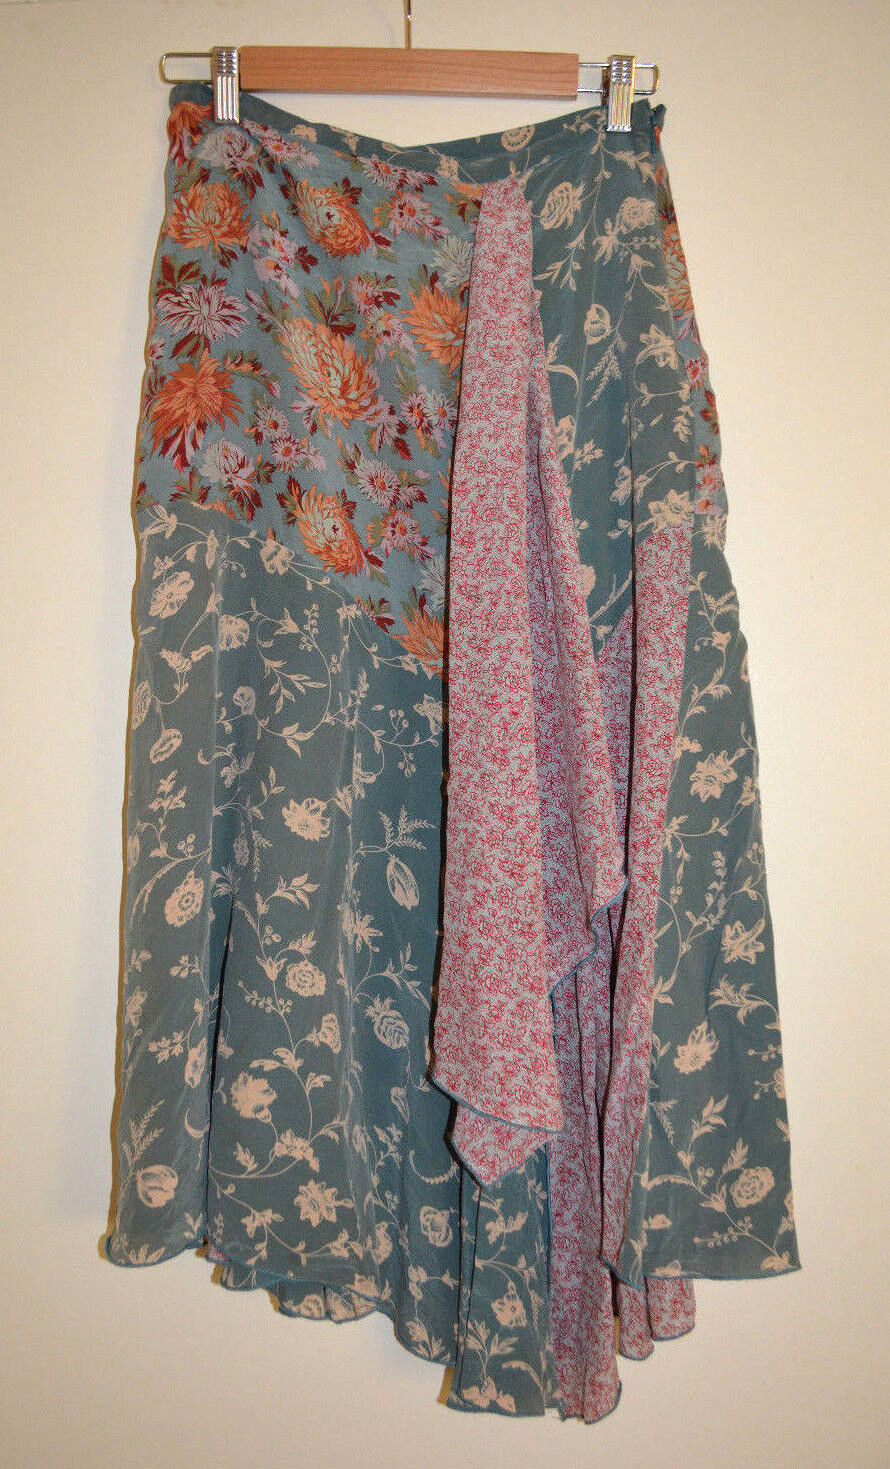 4 Anthropologie Asymmetrical Patchwork Floral Silk Scarf Skirt Extremely Rare